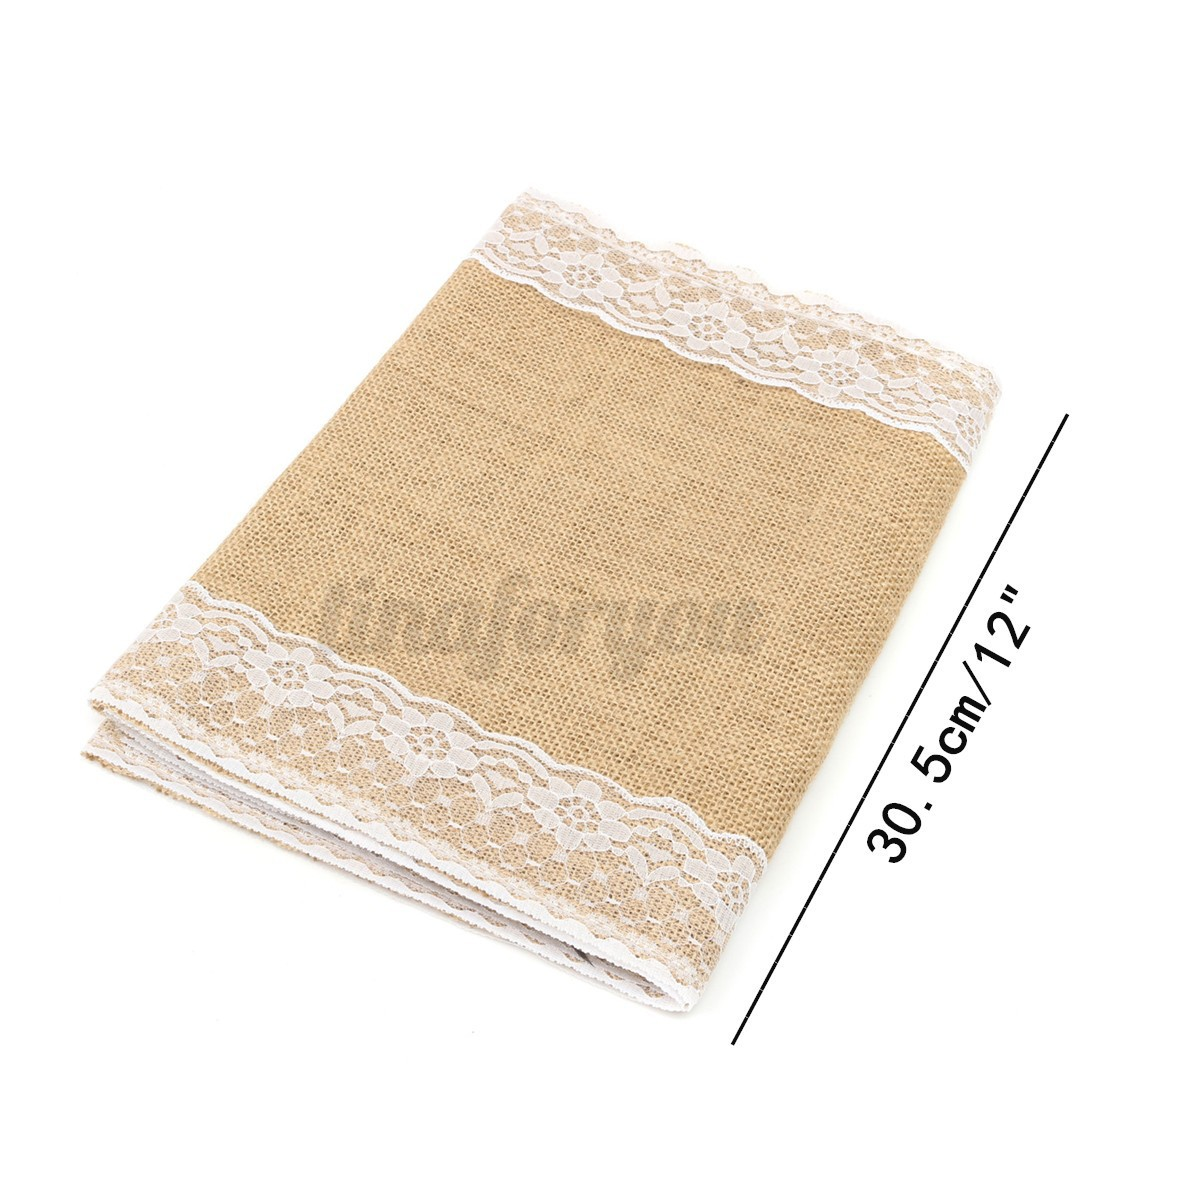 Chemin de table toile de jute naturel car interior design - Chemin de table toile de jute ...